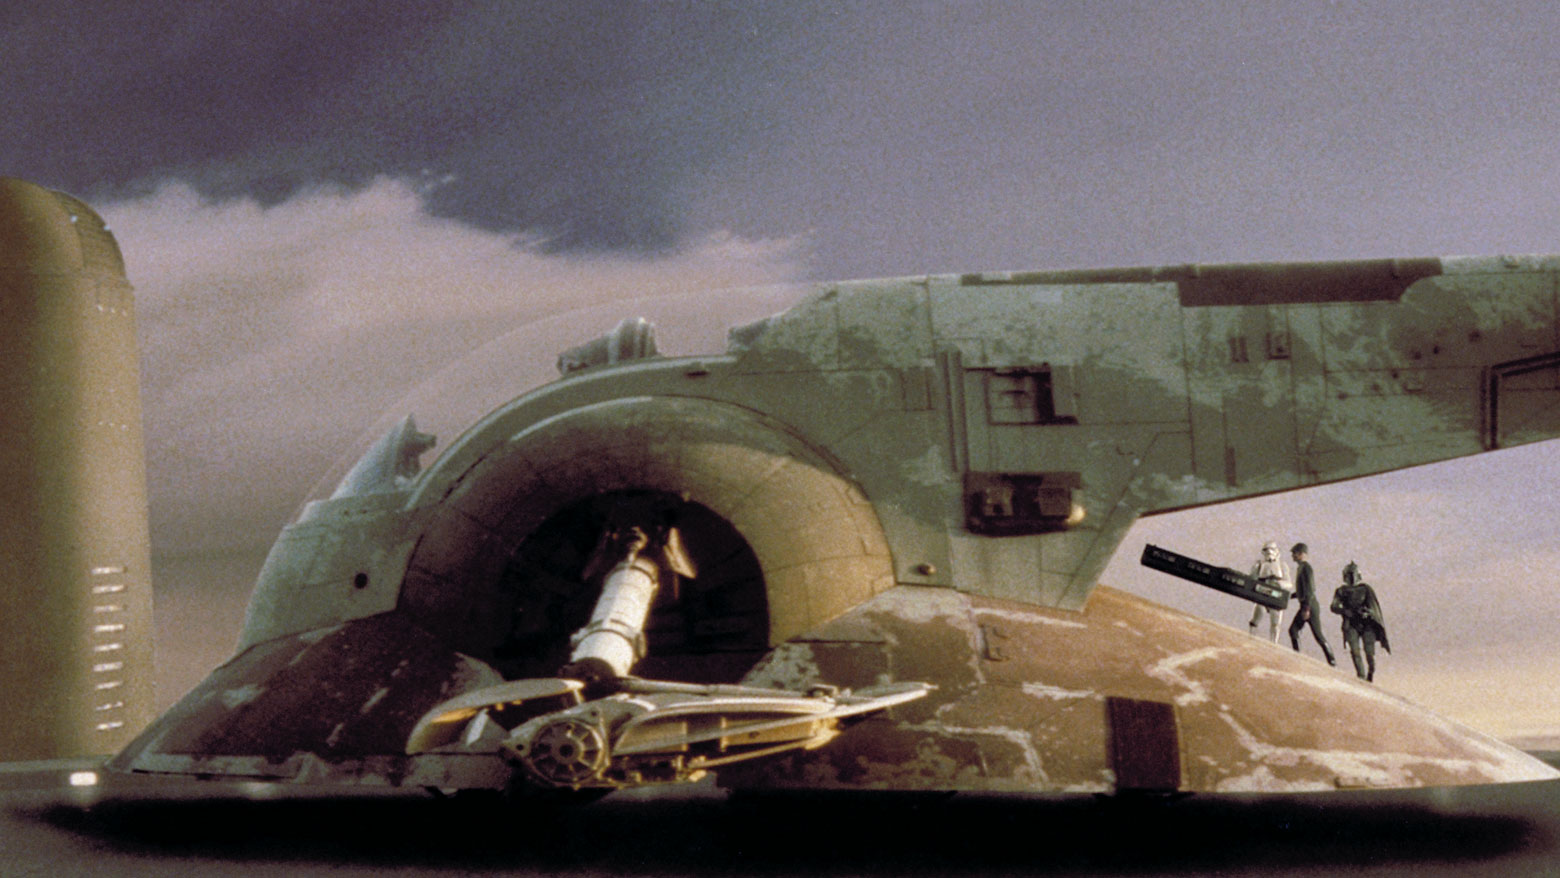 star wars bounty hunters images slave 1 in action wallpaper and ...